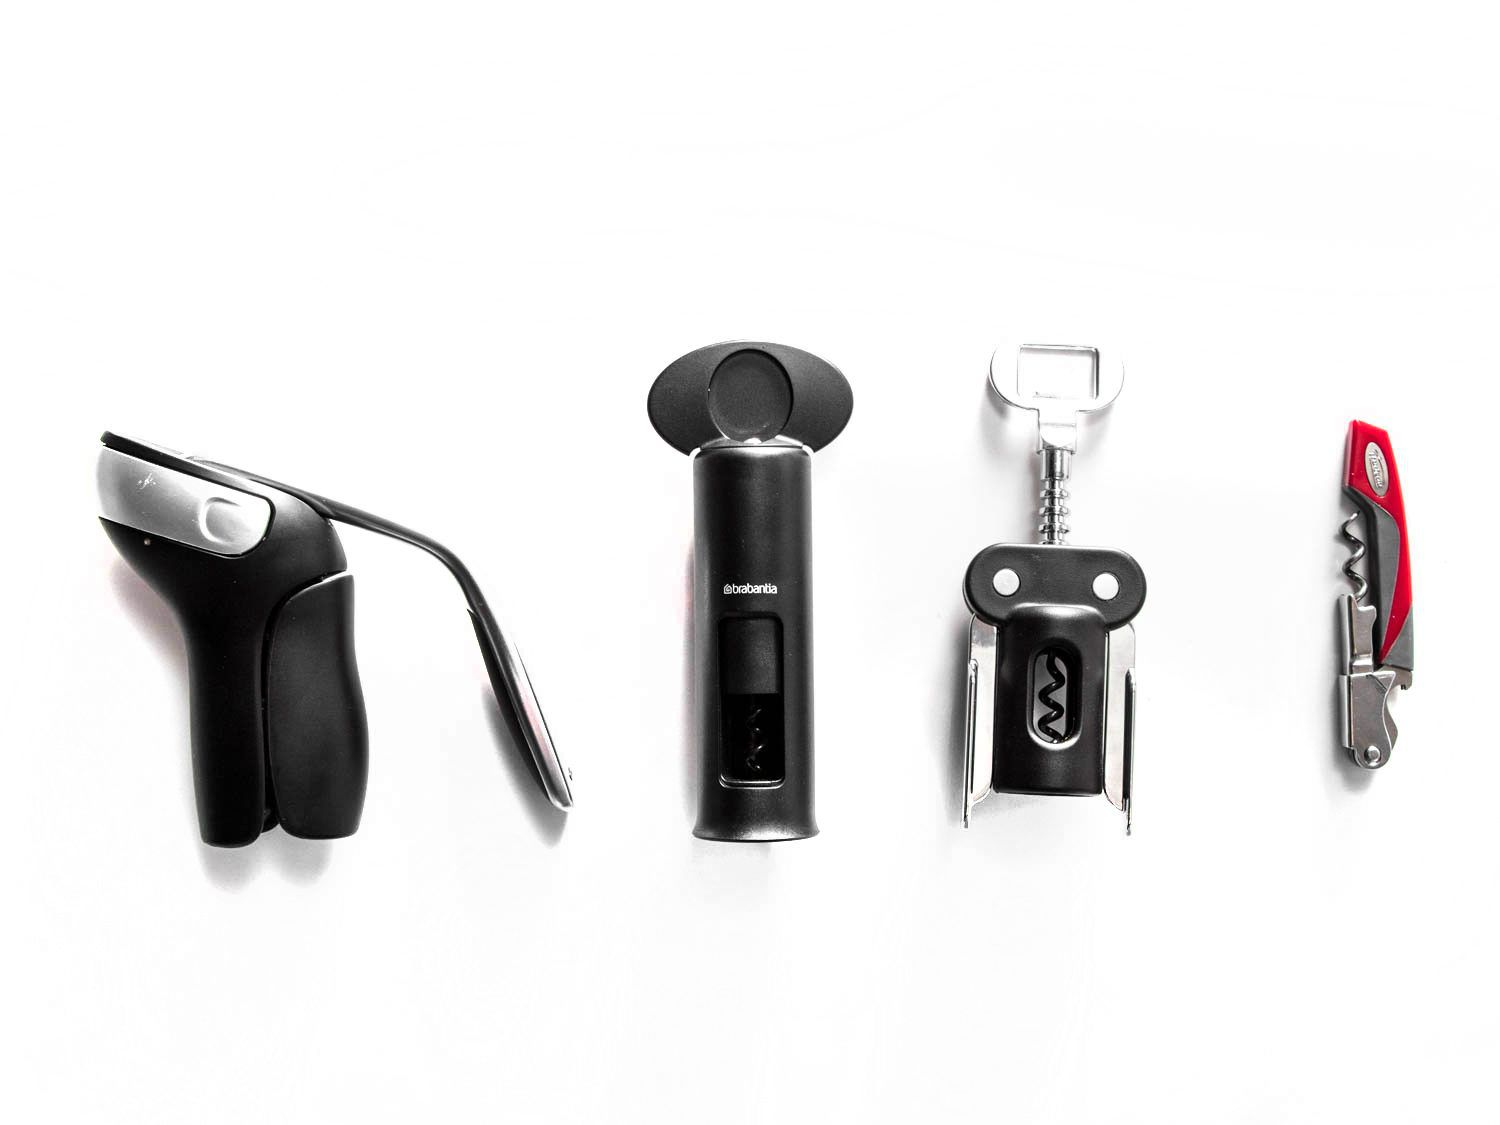 The four main styles of corkscrews we tested: lever, twist, winged, and waiter's friend